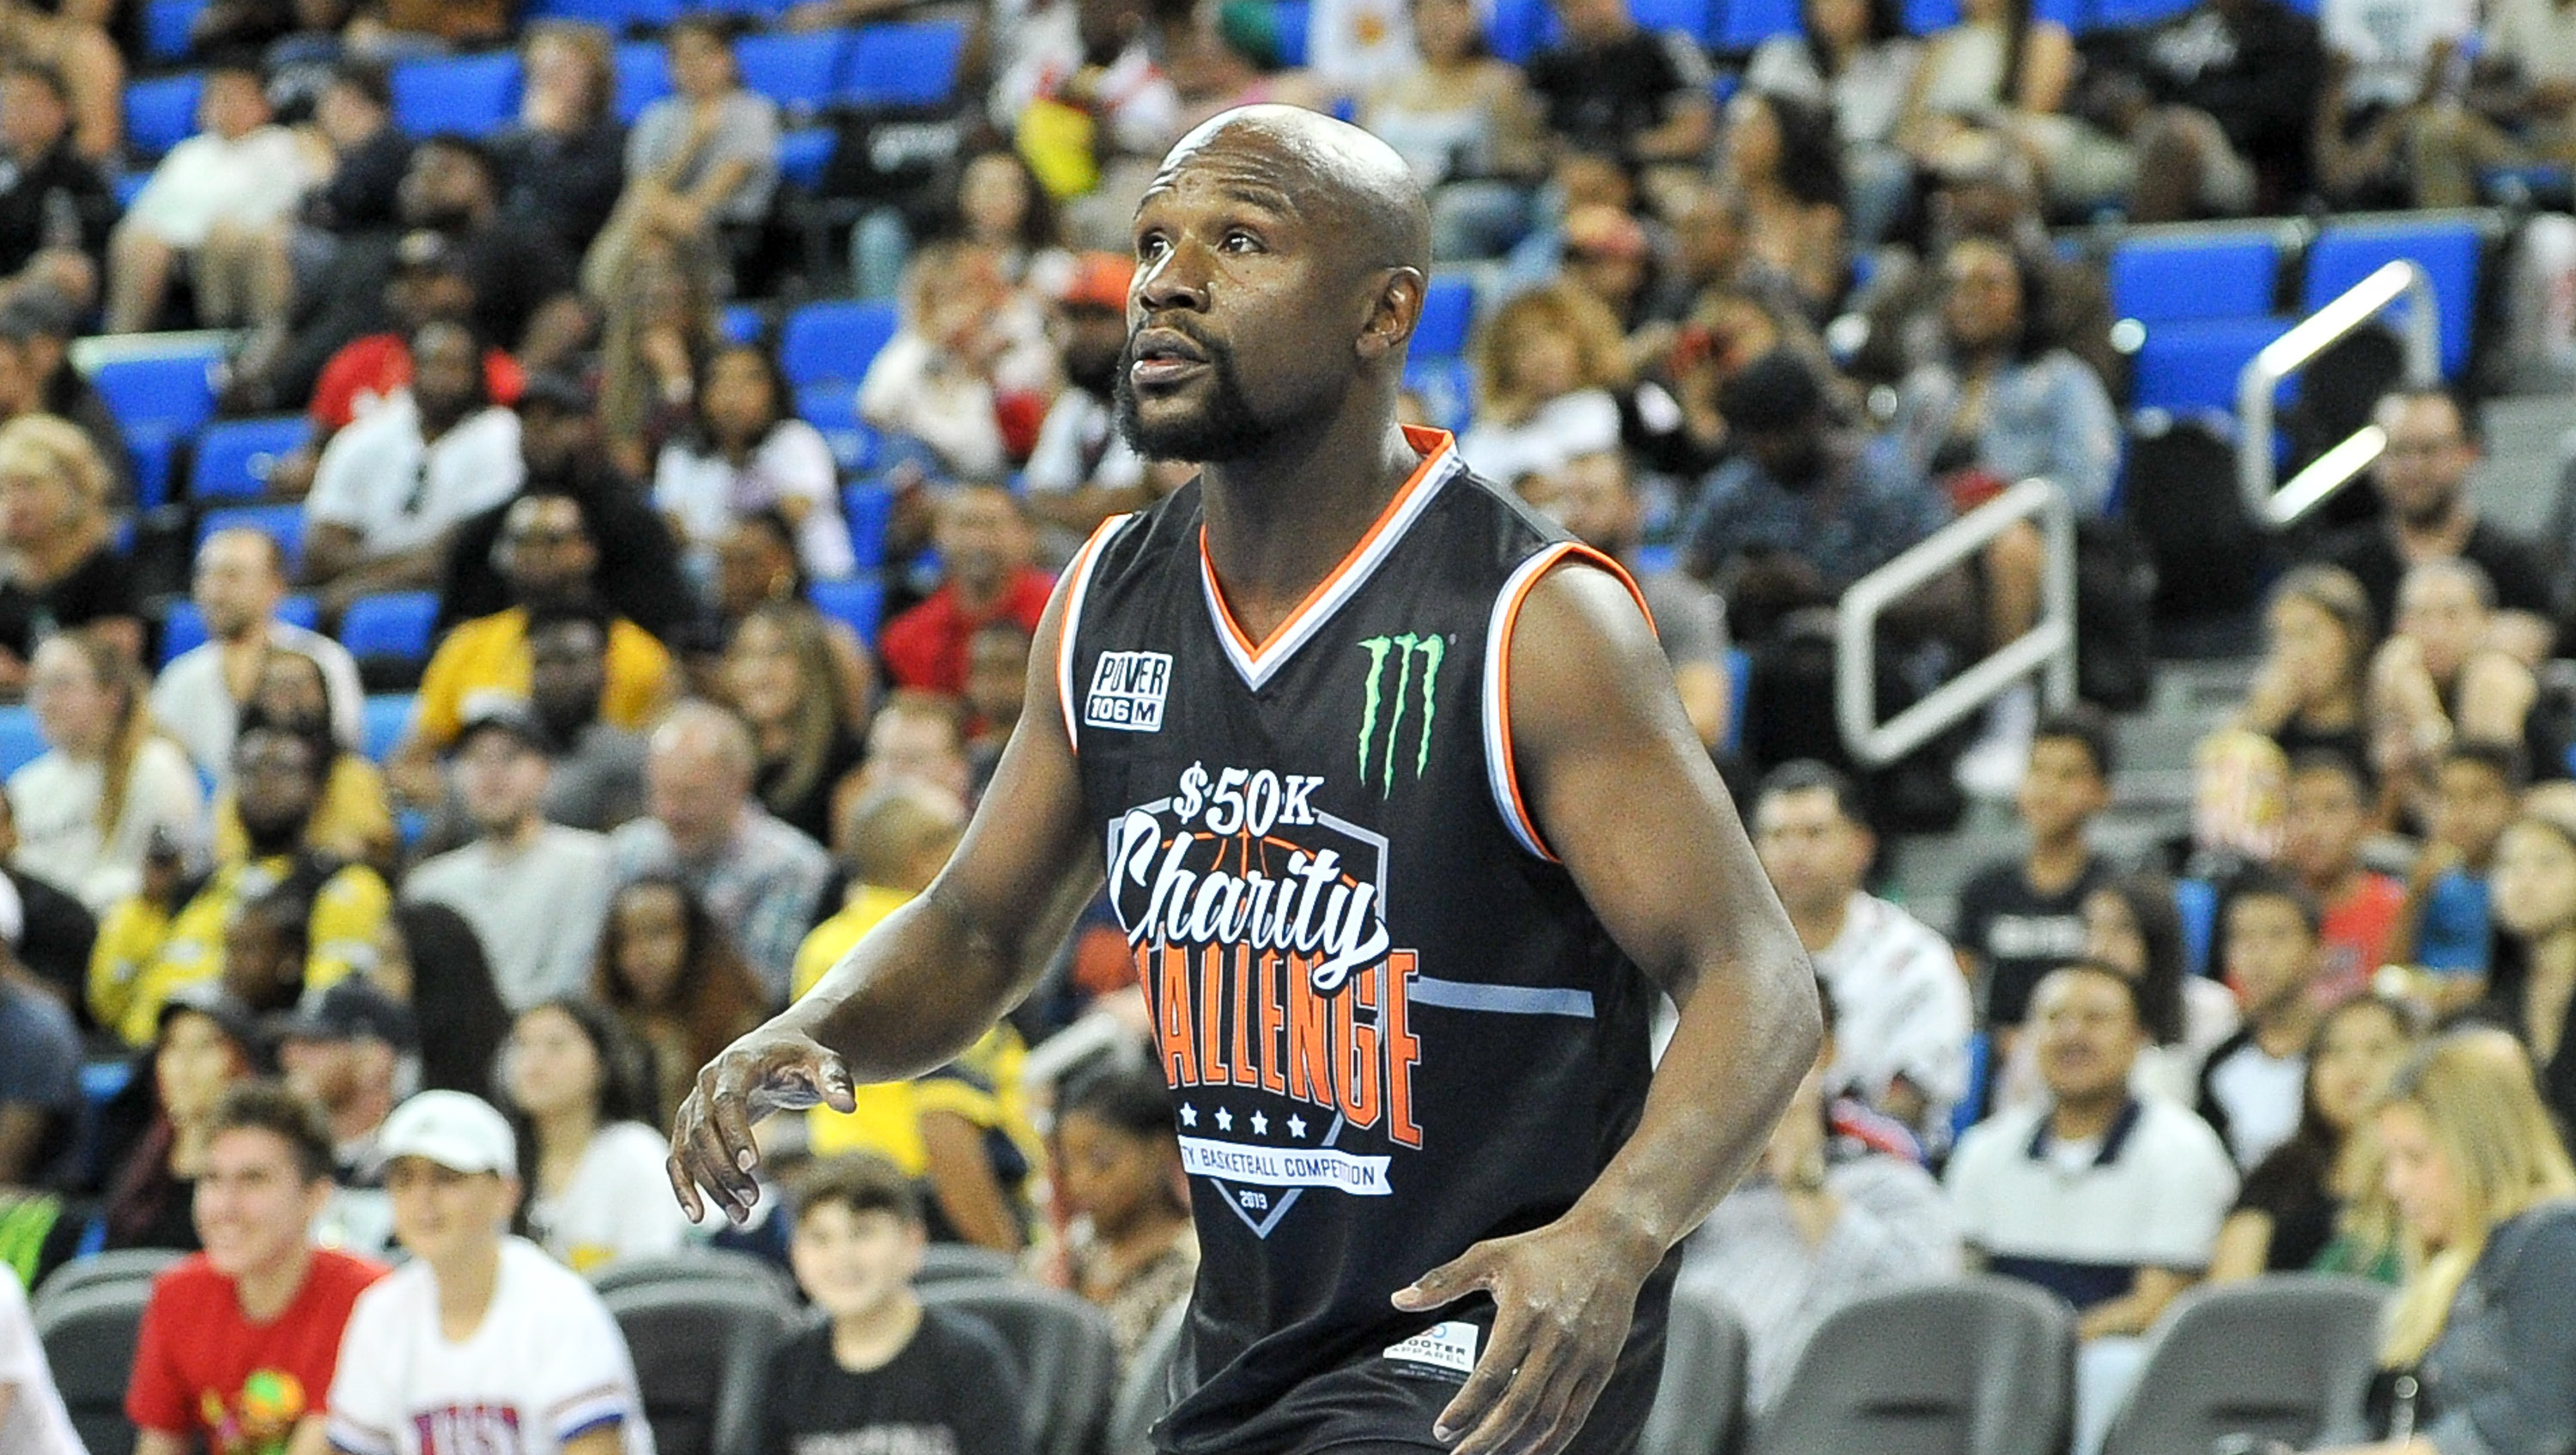 Floyd Mayweather Recovering from 'Broken Ankles' After Charity Basketball Game